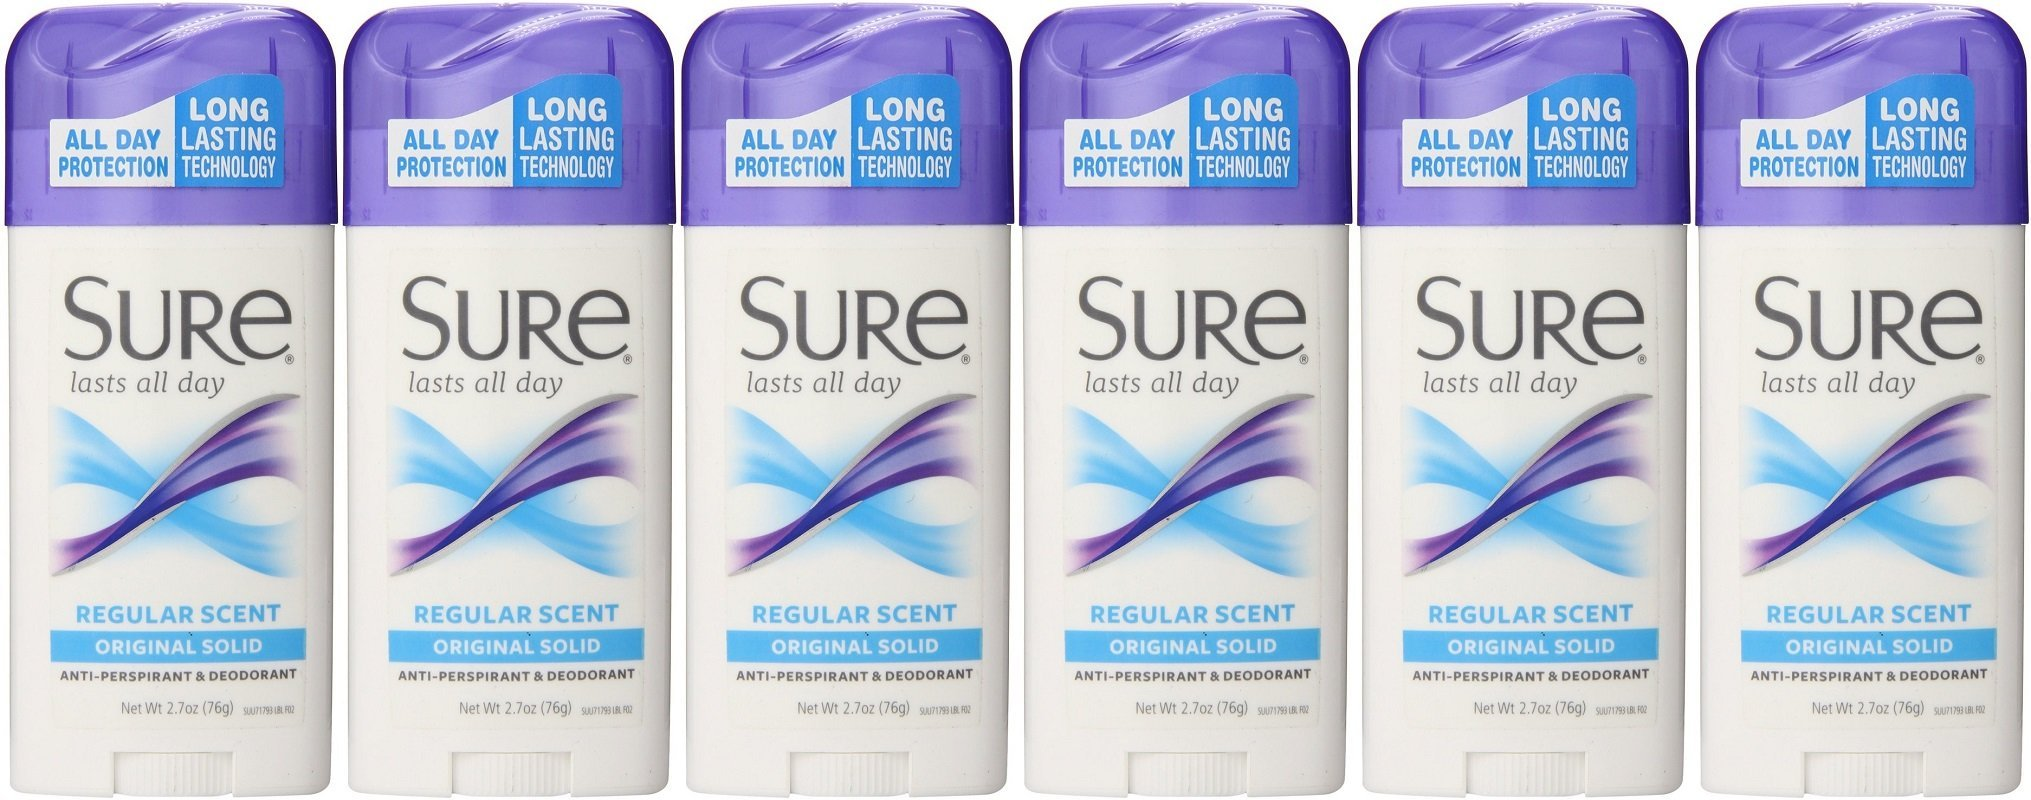 Sure Original Solid Anti Perspirant and Deodorant, Regular Scent, 2.7-Ounces (Pack of 6) by Sure (Image #1)